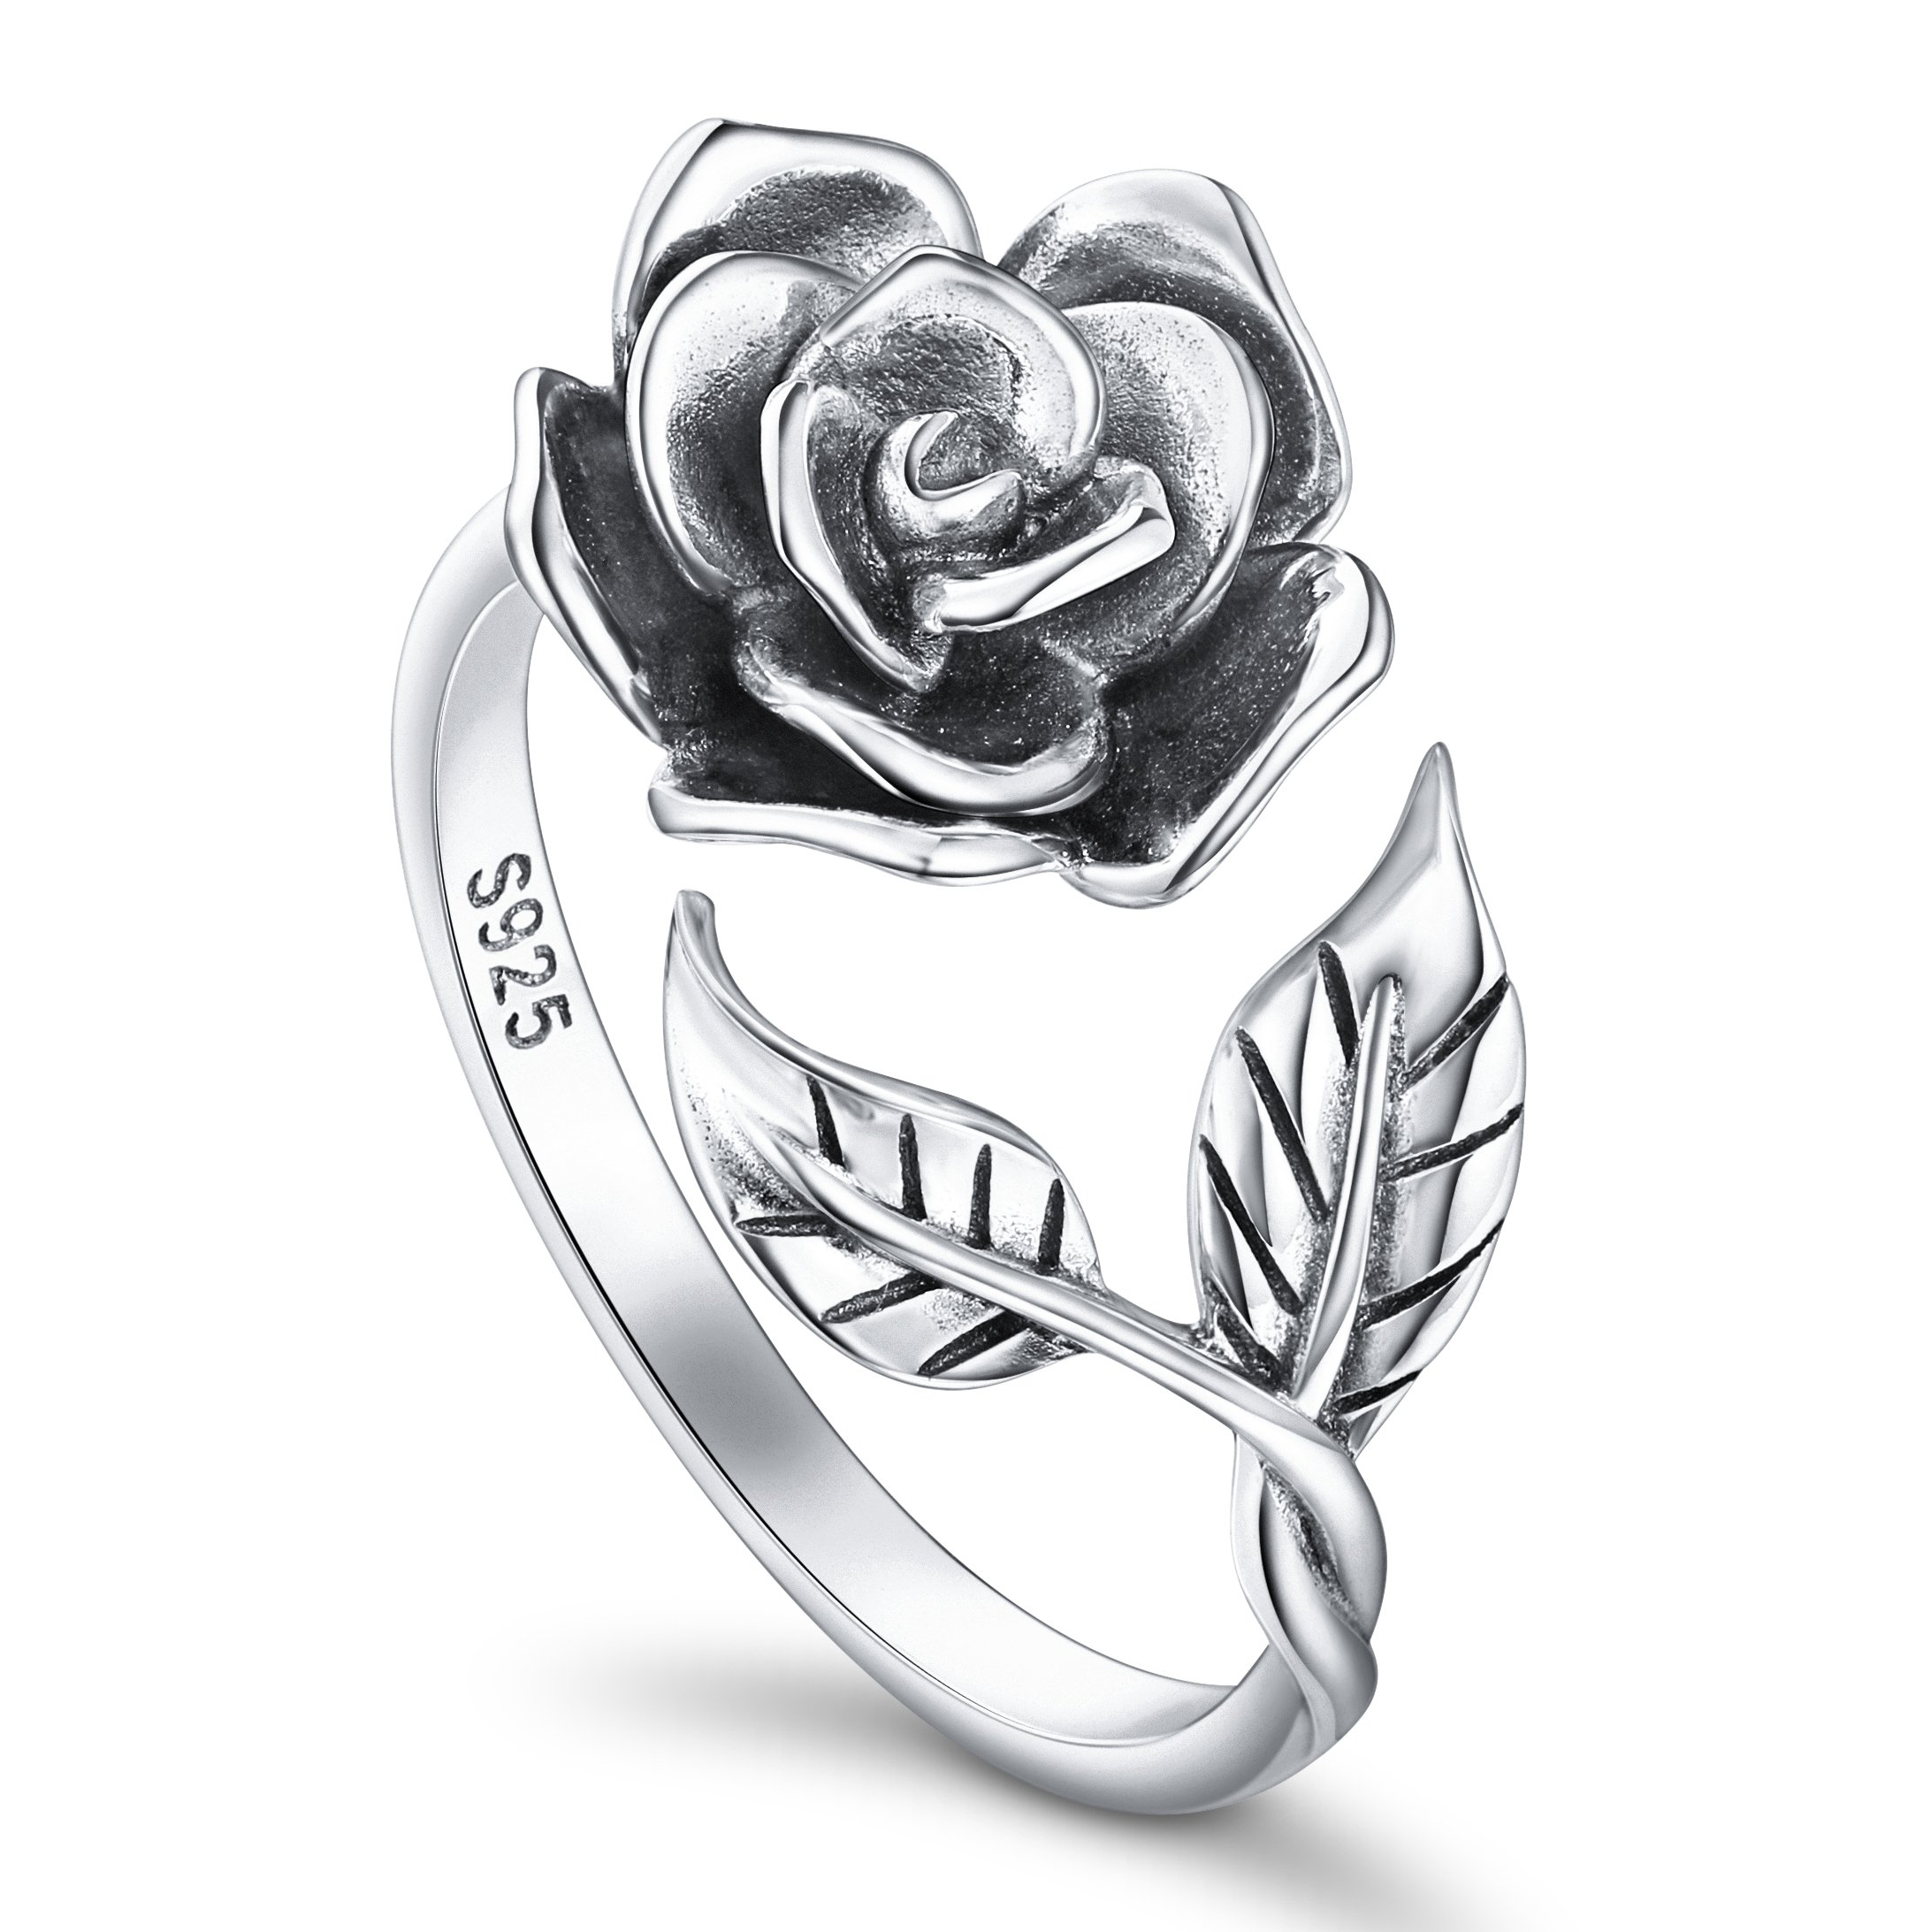 ALPHM Rose Flower Ring for Women S925 Oxidized Sterling Silver Adjustable Wrap Open Lotus Spoon Thumb Rings 8 by ALPHM